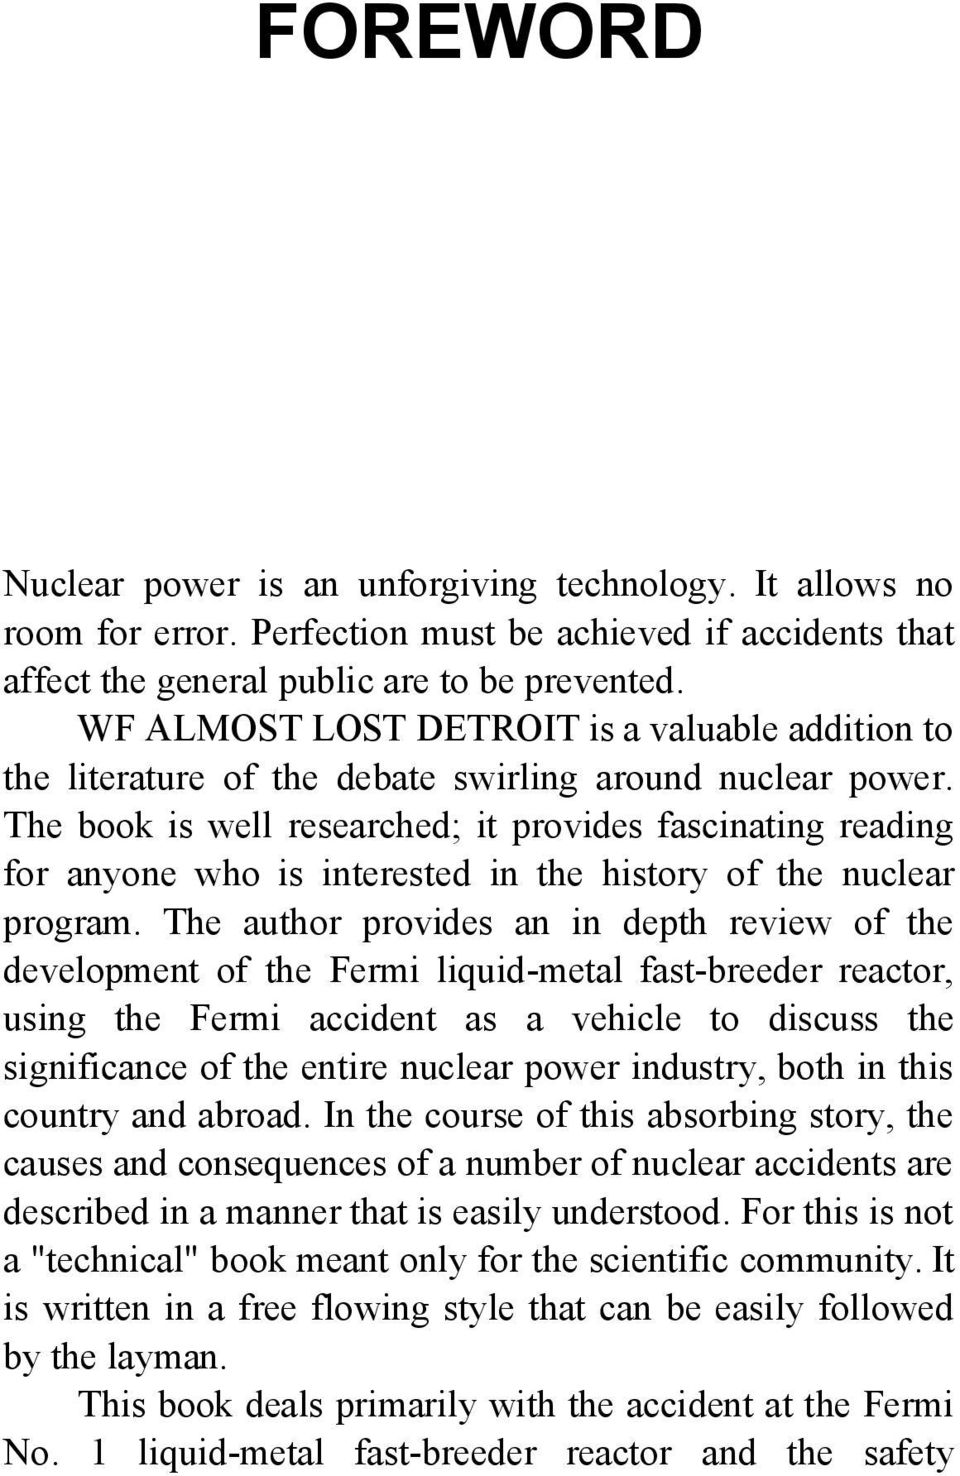 The book is well researched; it provides fascinating reading for anyone who is interested in the history of the nuclear program.